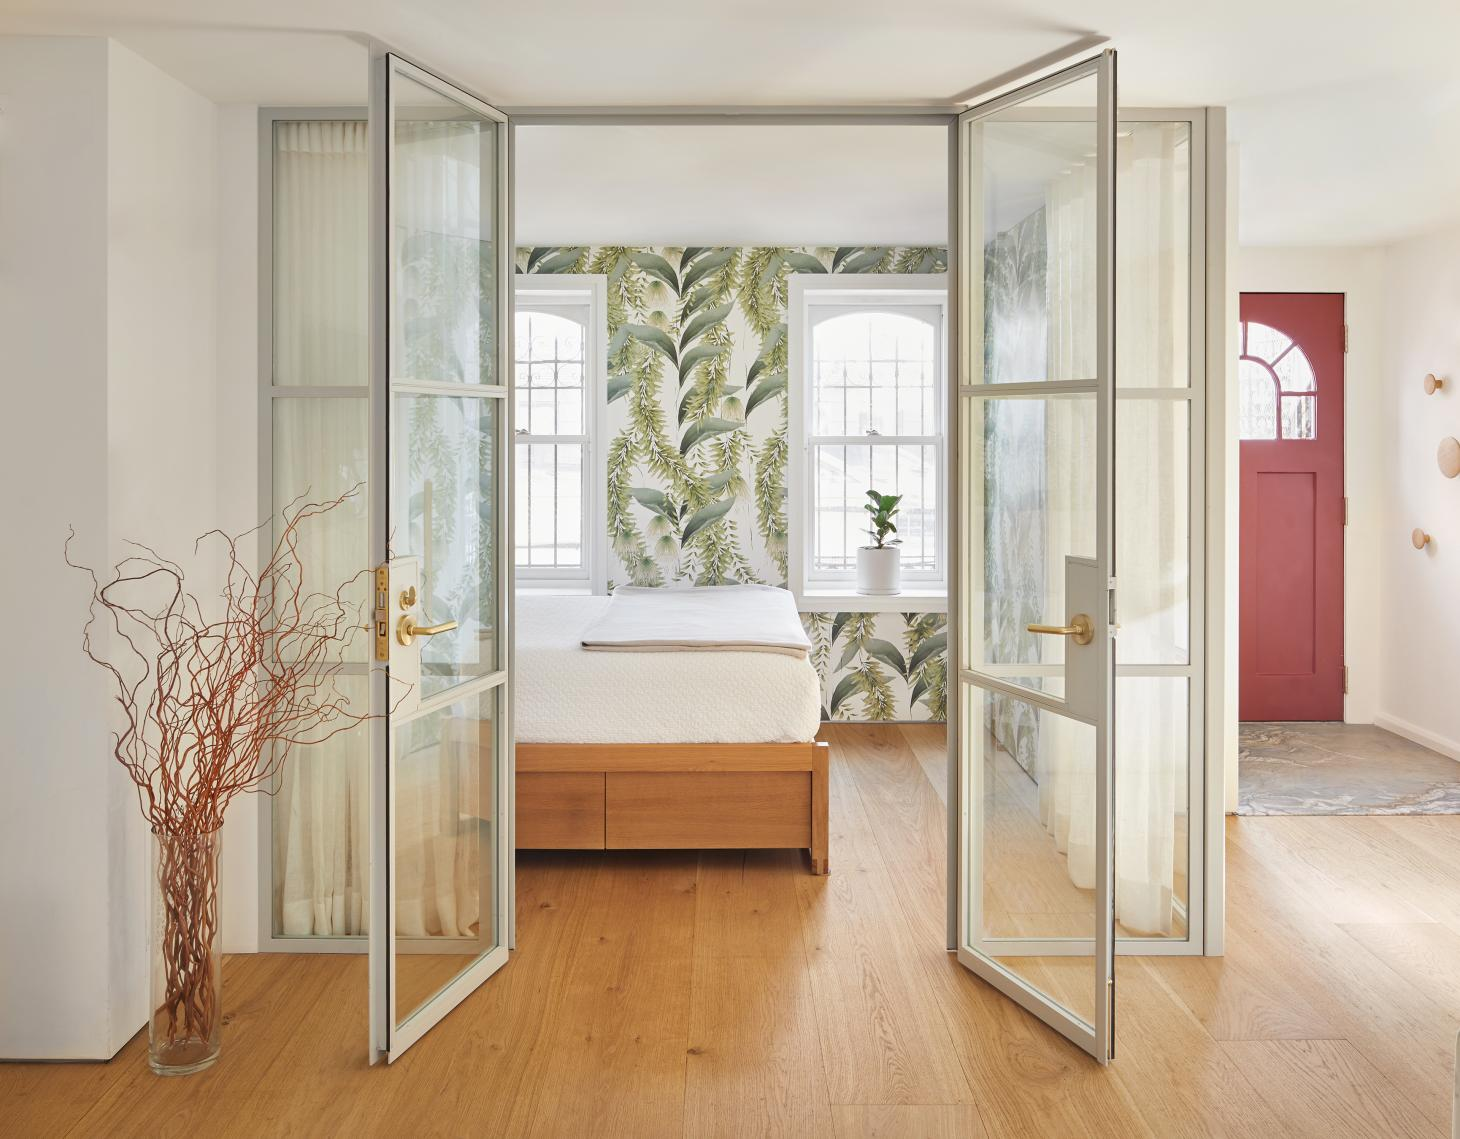 guest room with nature inspired wallpaper at Boerum Hill townhouse